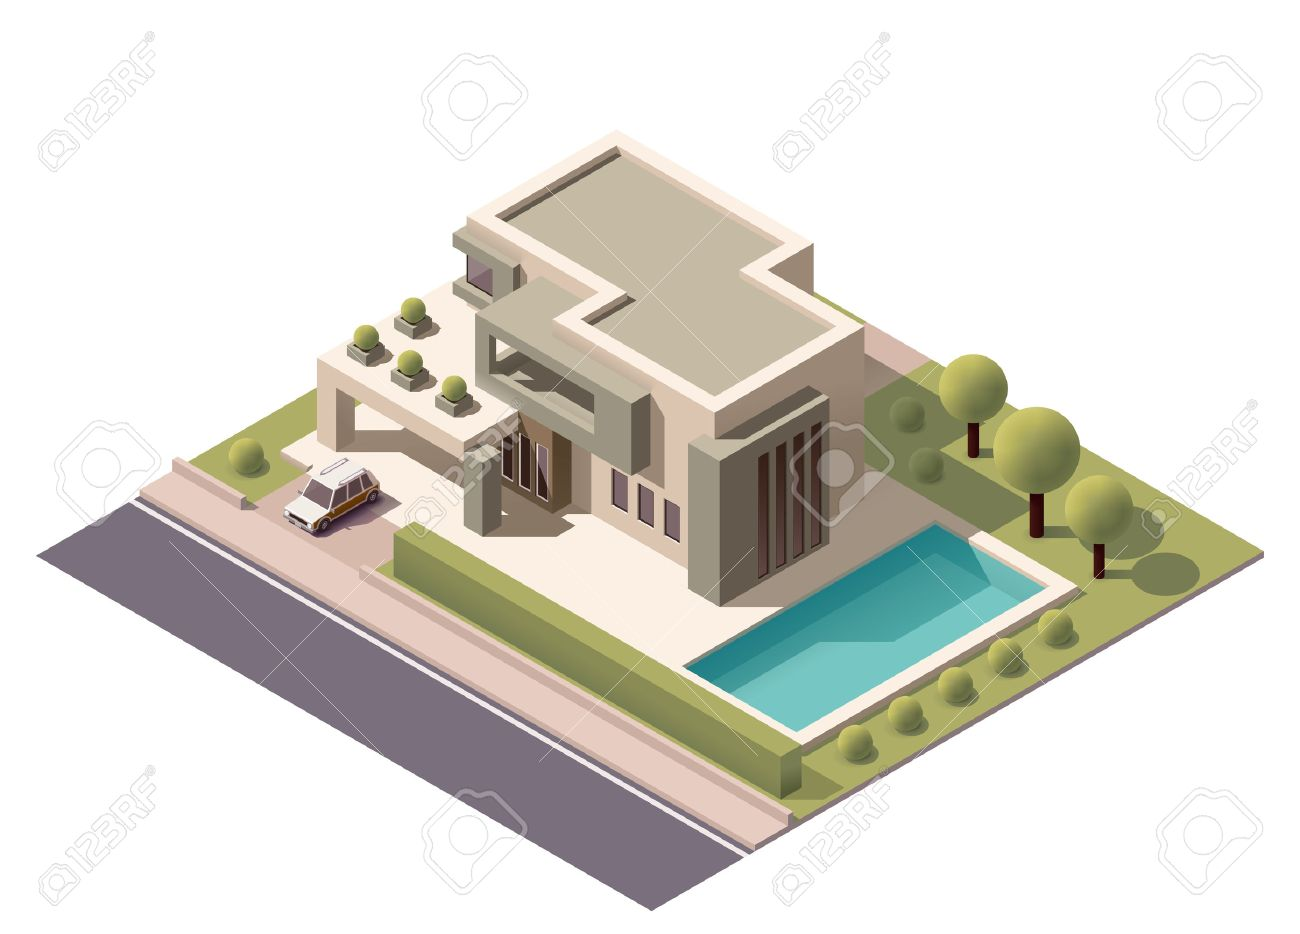 Isometric icon representing modern house with backyard royalty free isometric icon representing modern house with backyard stock vector 41653322 ccuart